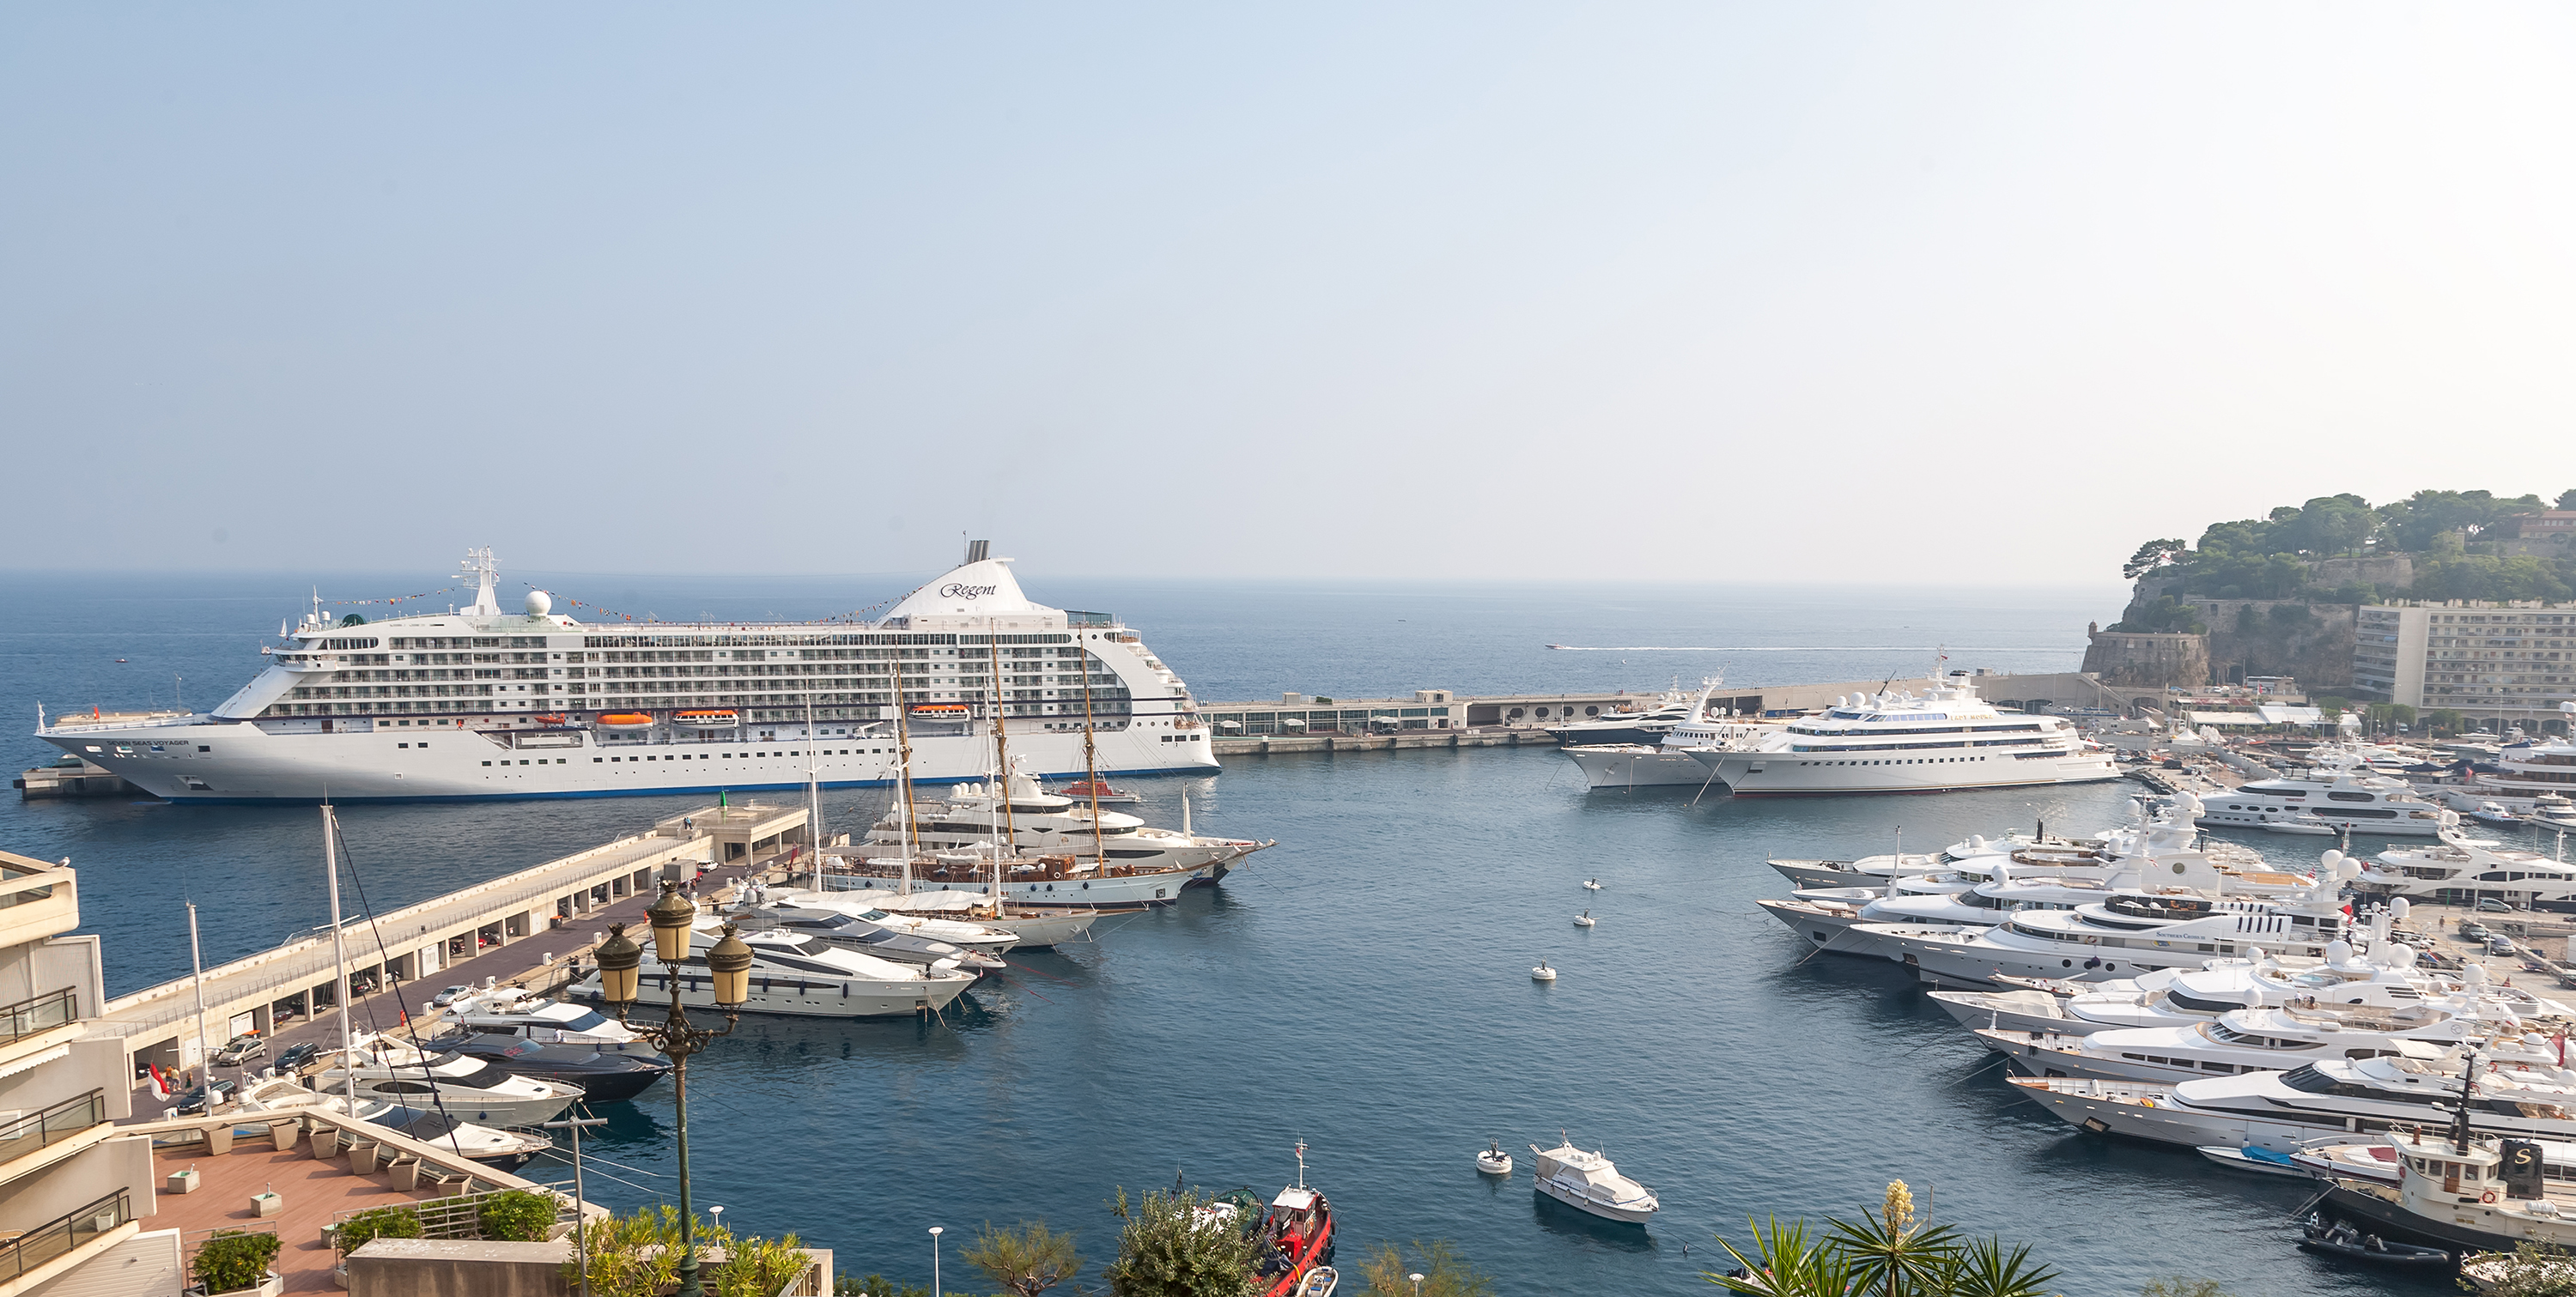 Seven Seas Voyager docked in Monaco